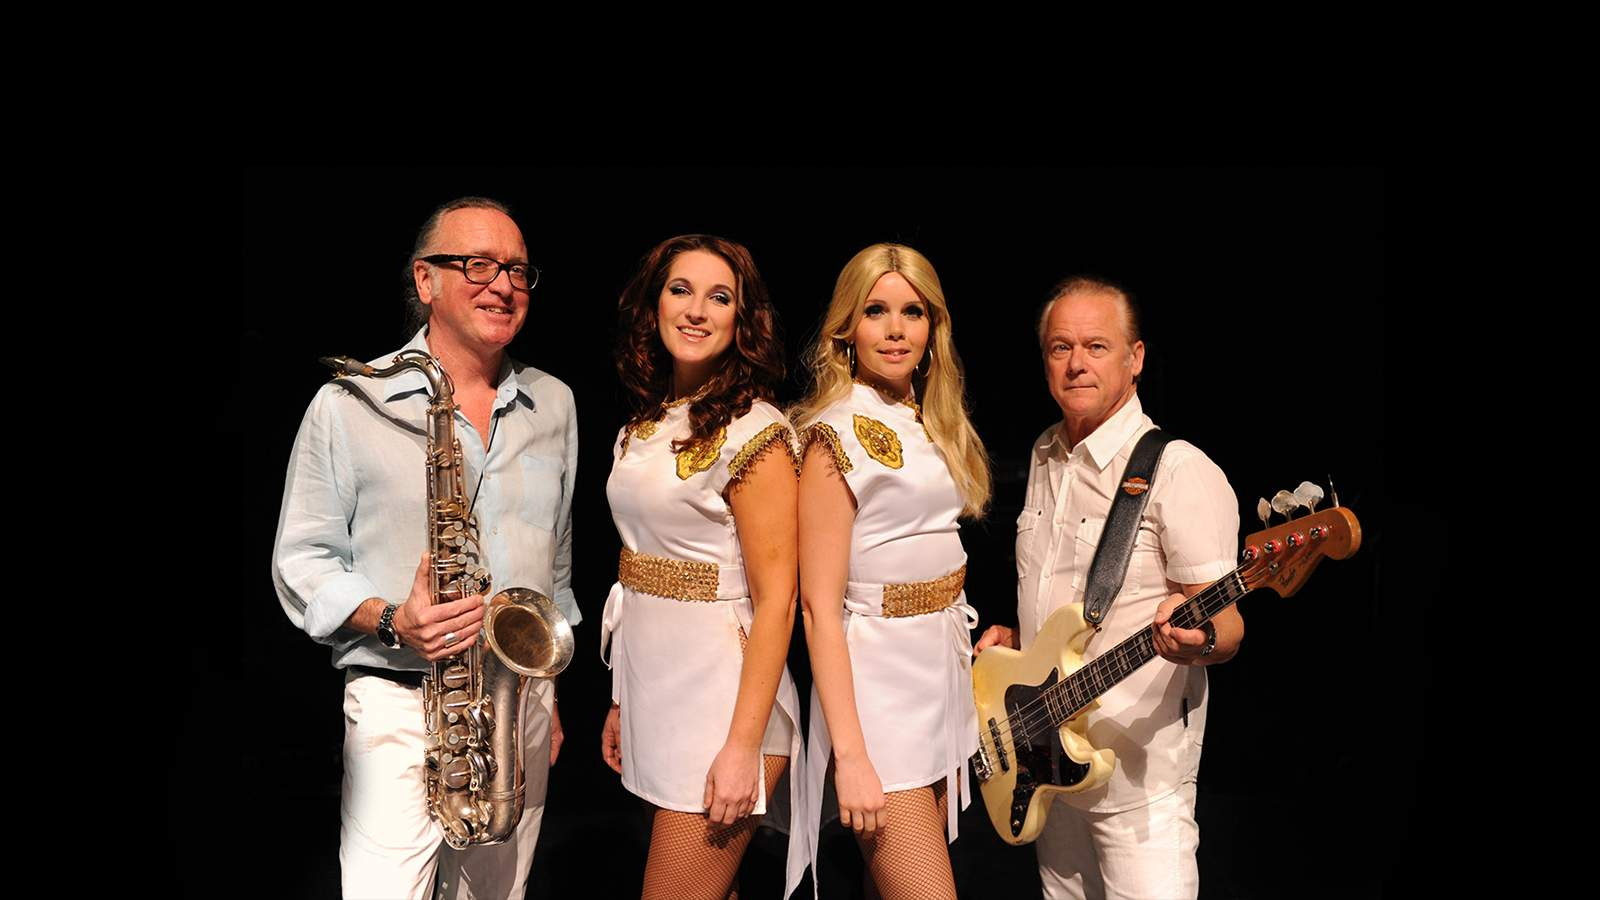 ABBA The Concert - ABBA Tribute (Rescheduled from 3/29/2020, 7/22/2020)